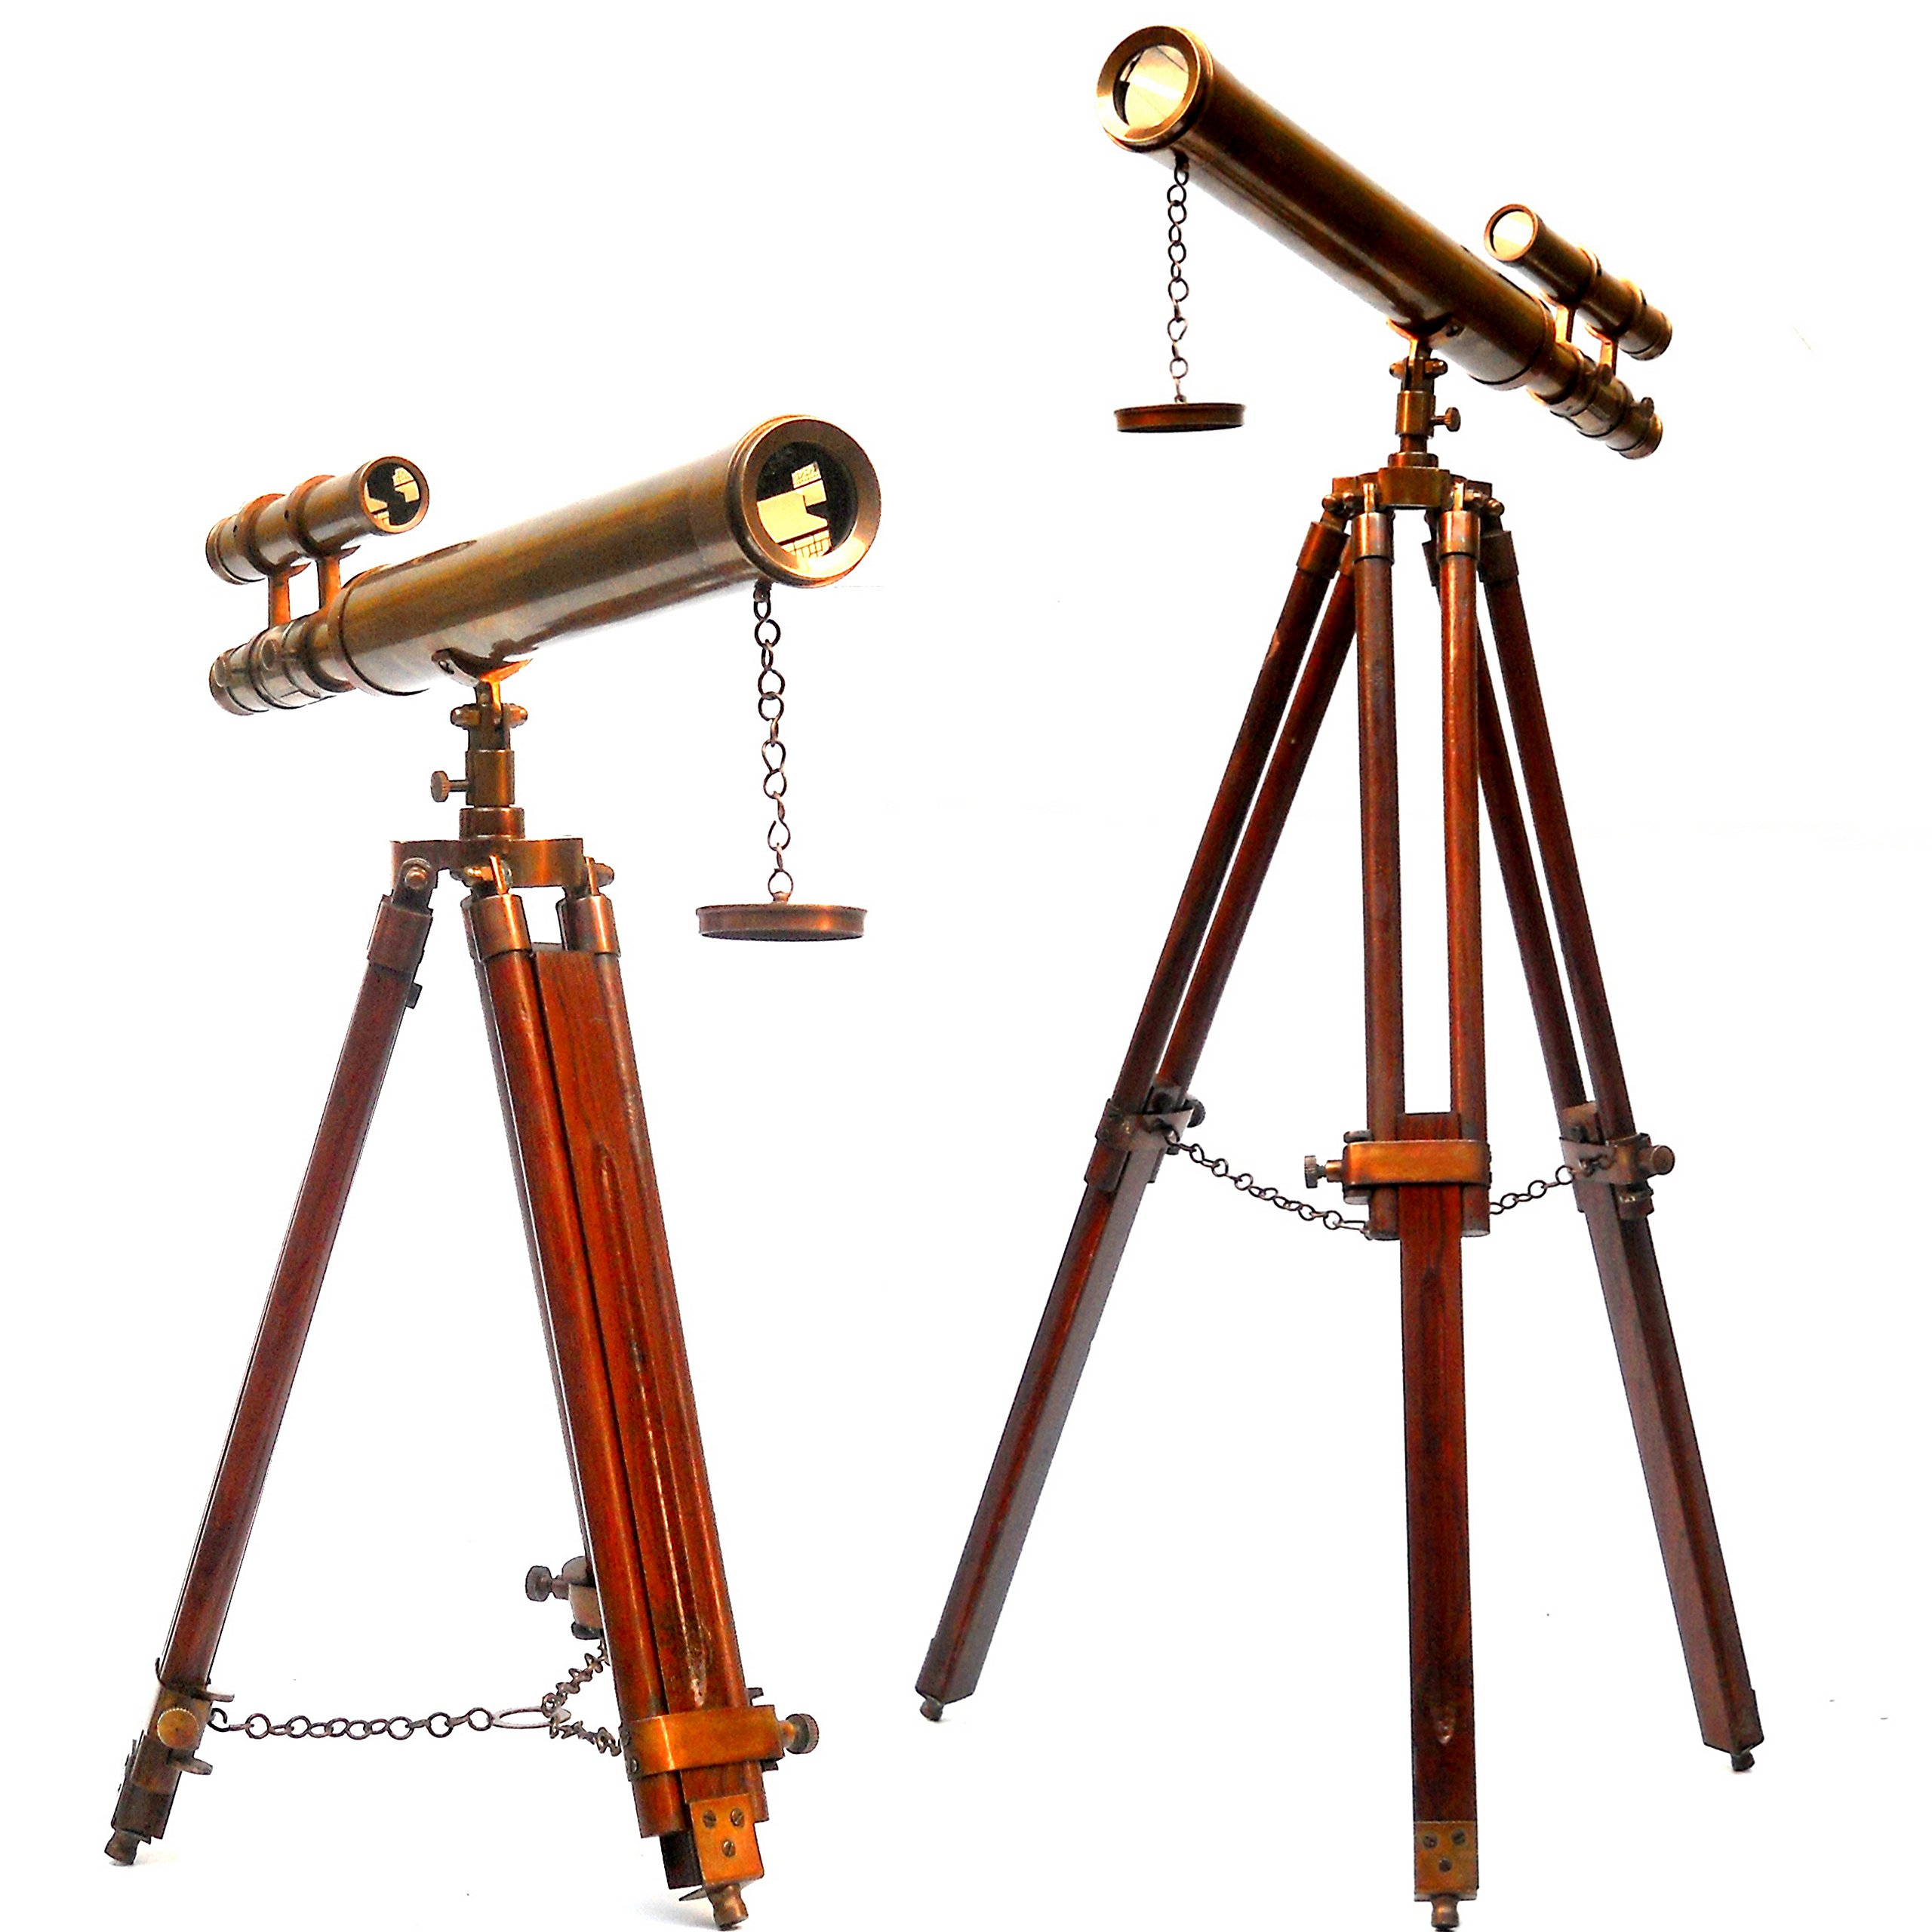 Collectibles Buy U.S. Navy Griffith Antique Tripod Telescope Double Barrel Nautical Decorative (Double Barrel Tube (Height:26 Inches))